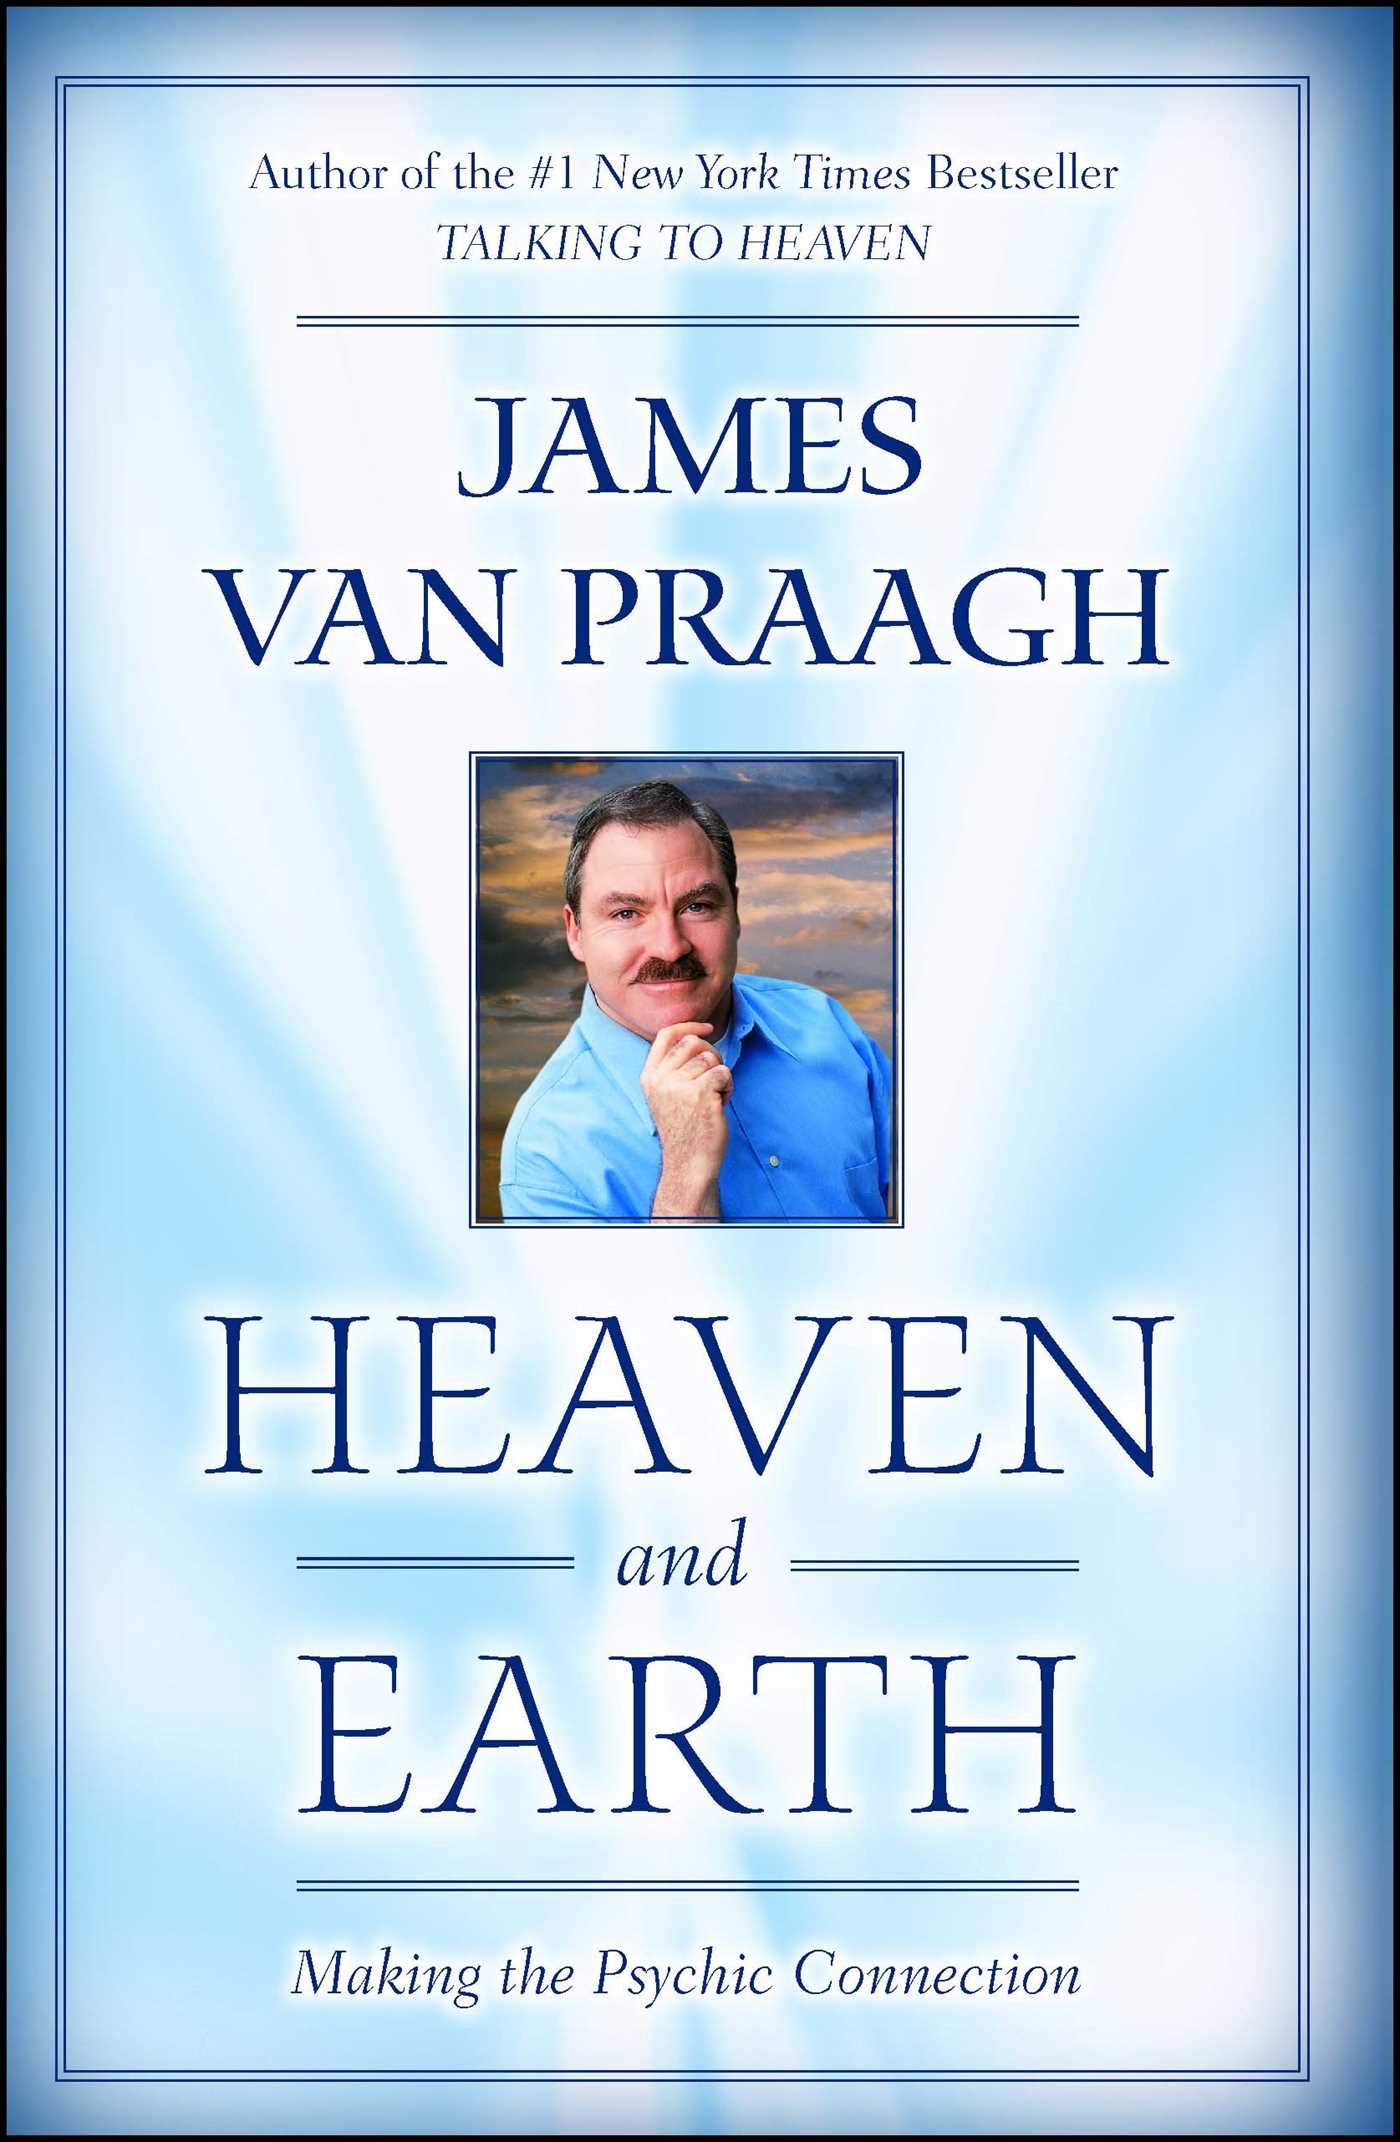 Heaven and earth 9781416525554 hr